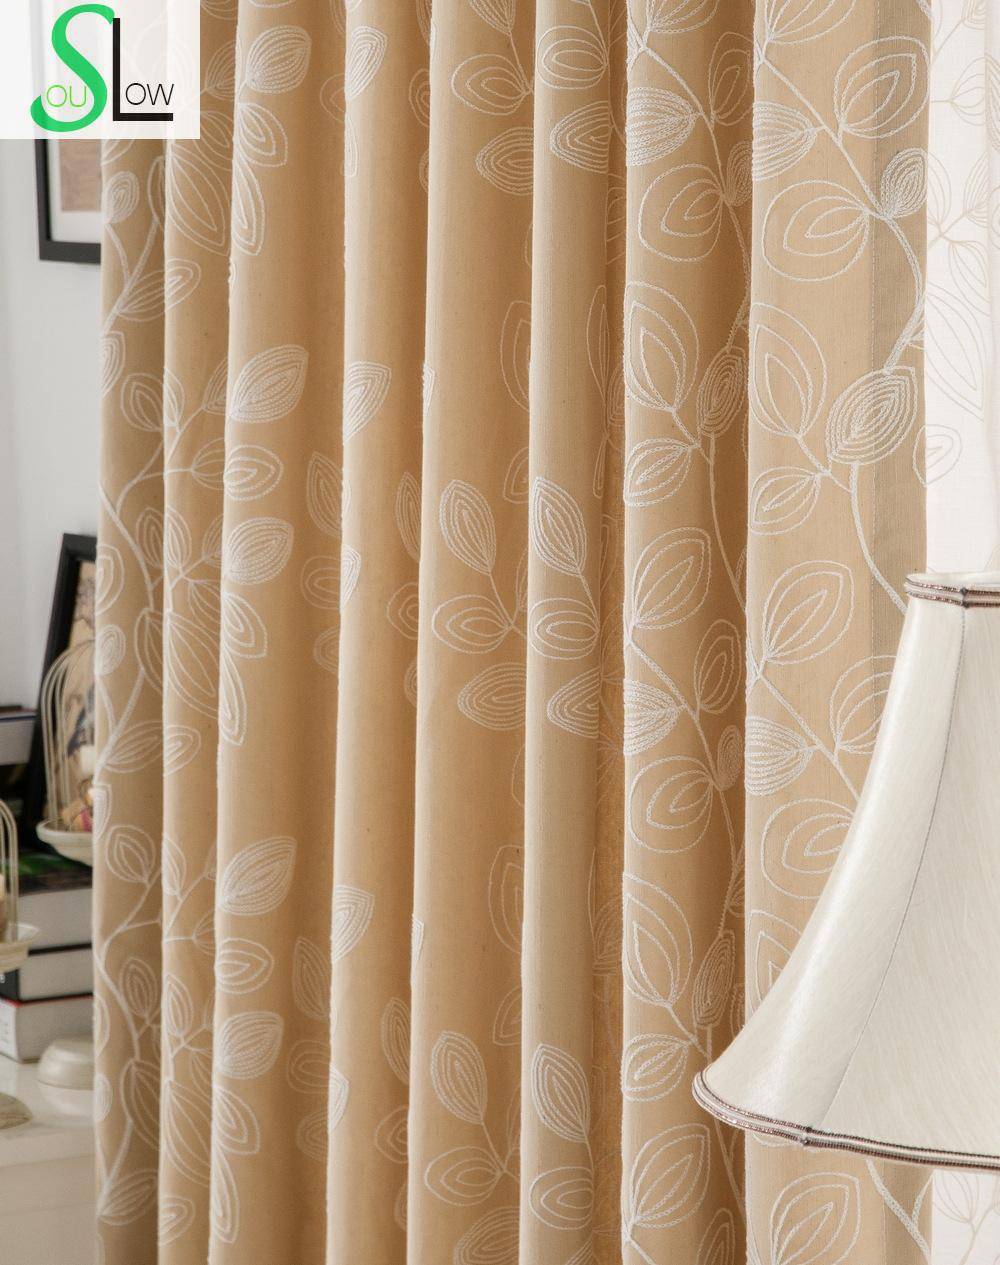 Sheer curtain texture - Cotton Embroidered Curtain Four Broadleaf Grass Texture Yarn Pastoral Leaves Curtains For Living Room Sheer Tulle